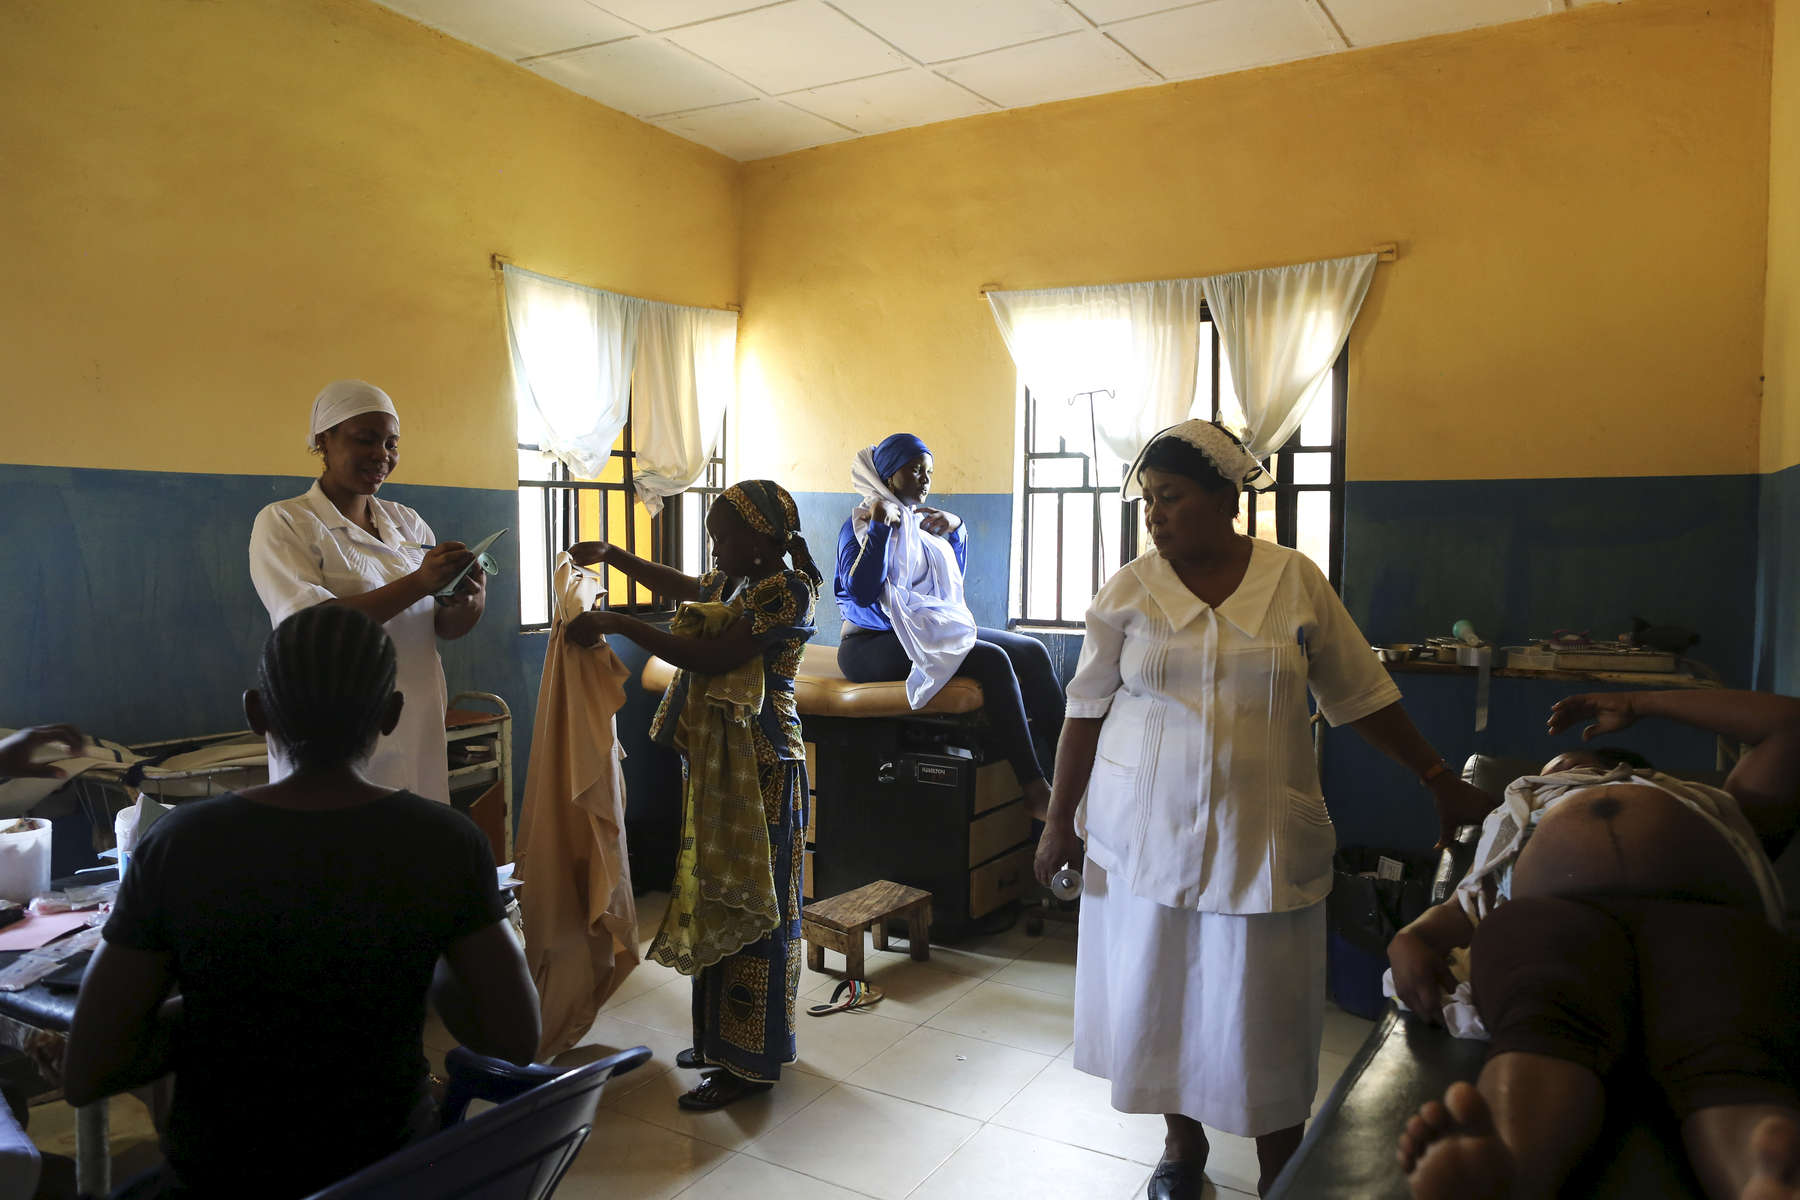 Pregnant women get their check up at the medical facility of Kuchigoro in Abuja, Nigeria.